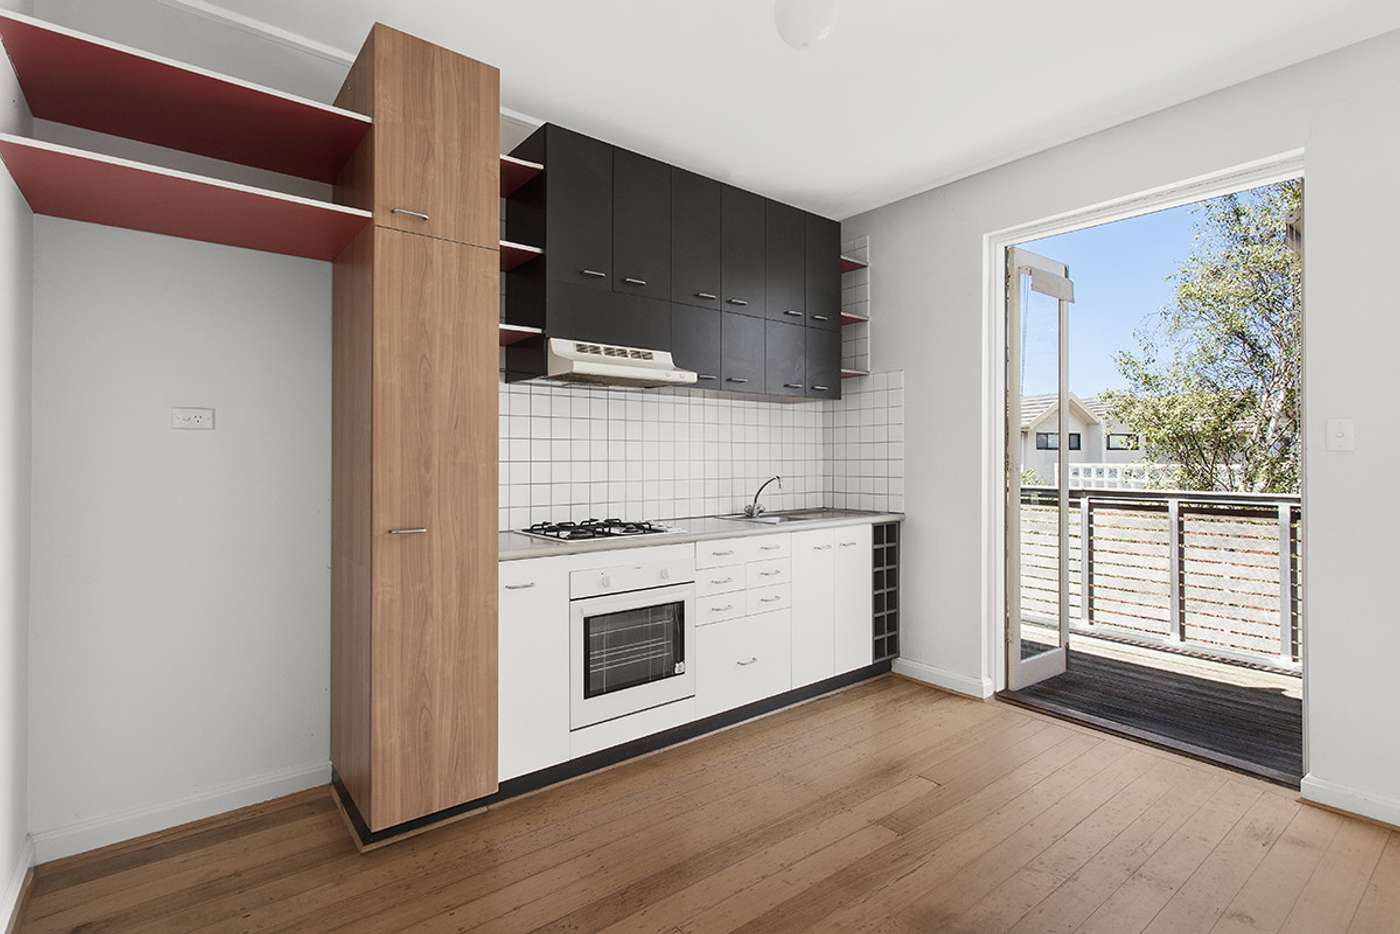 Fifth view of Homely apartment listing, 2/1229 Glenhuntly Road, Glen Huntly VIC 3163